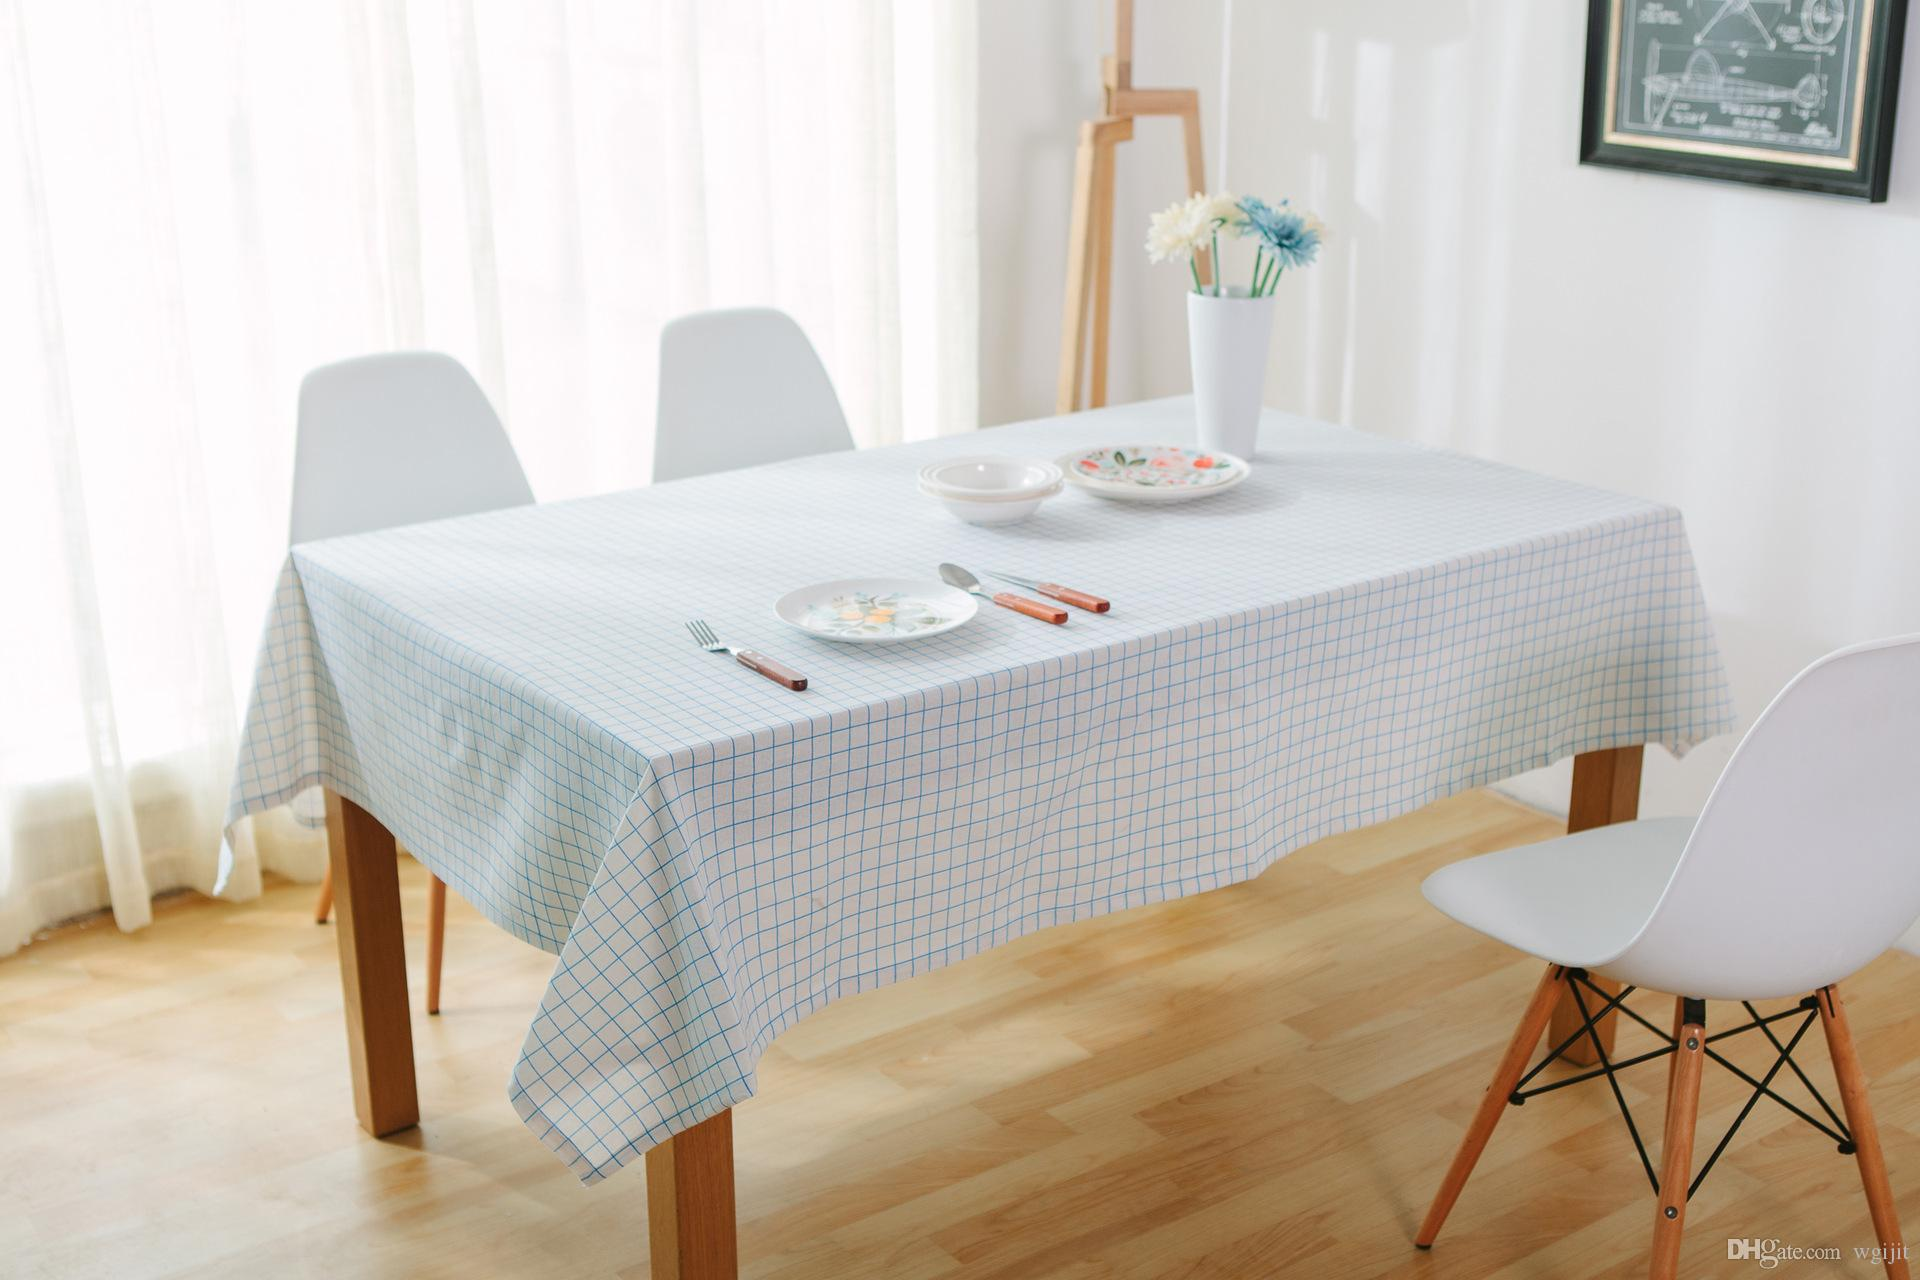 Handmade Fresh Blue White Grid Cotton Linen Tablecloth New Home Kitchen Decor Dinner Table Top Cover Wedding Party Table Runner Spring Tablecloths Round ... & Handmade Fresh Blue White Grid Cotton Linen Tablecloth New Home ...